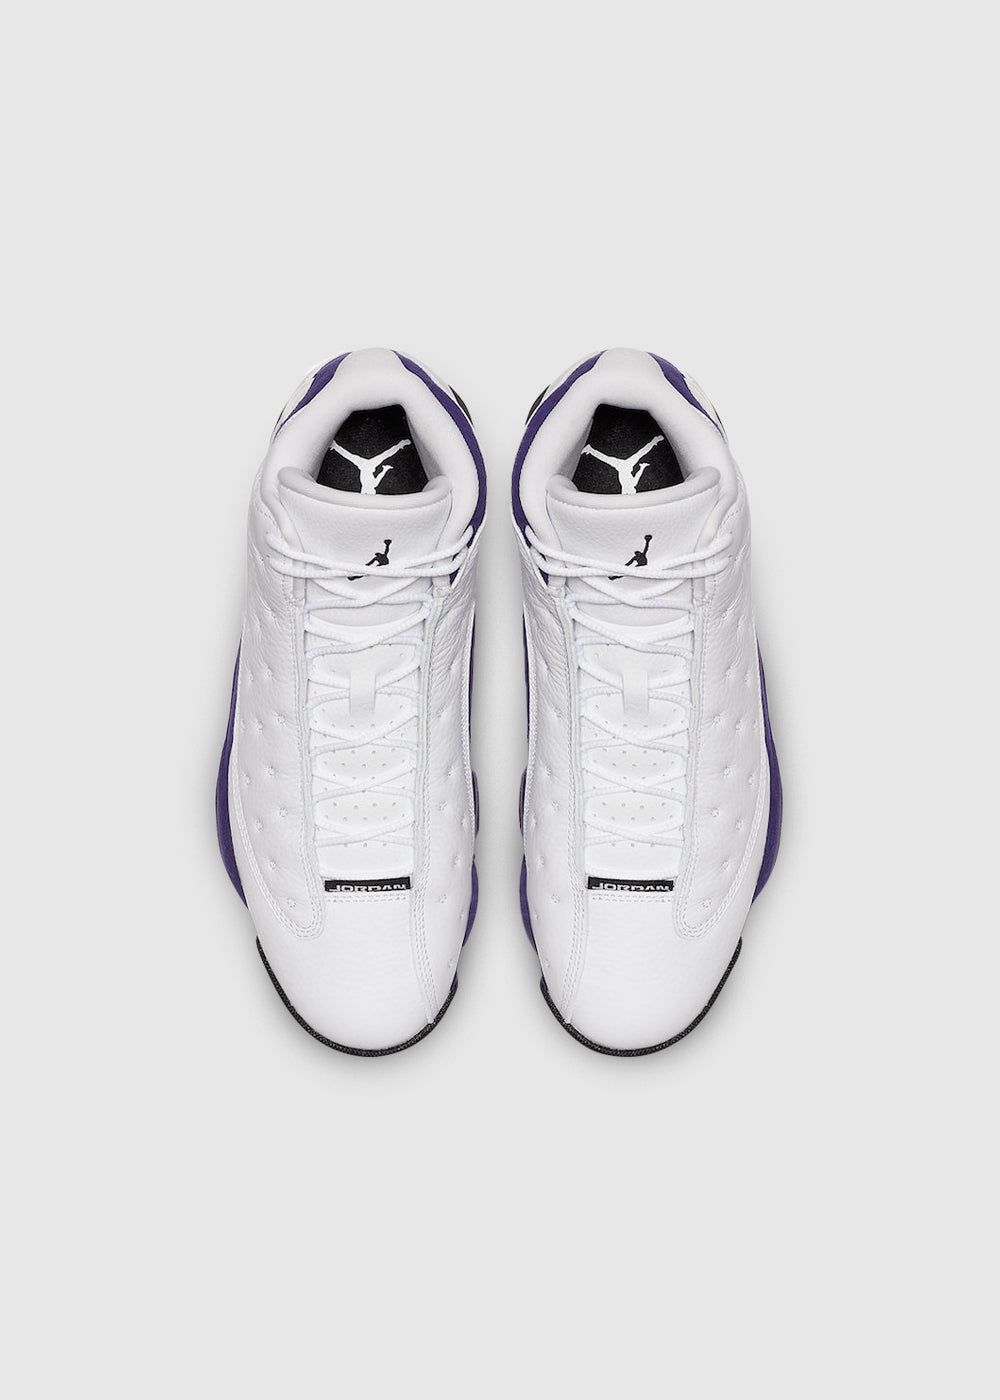 jordan-gs-aj-13-lakers-white-purple-3